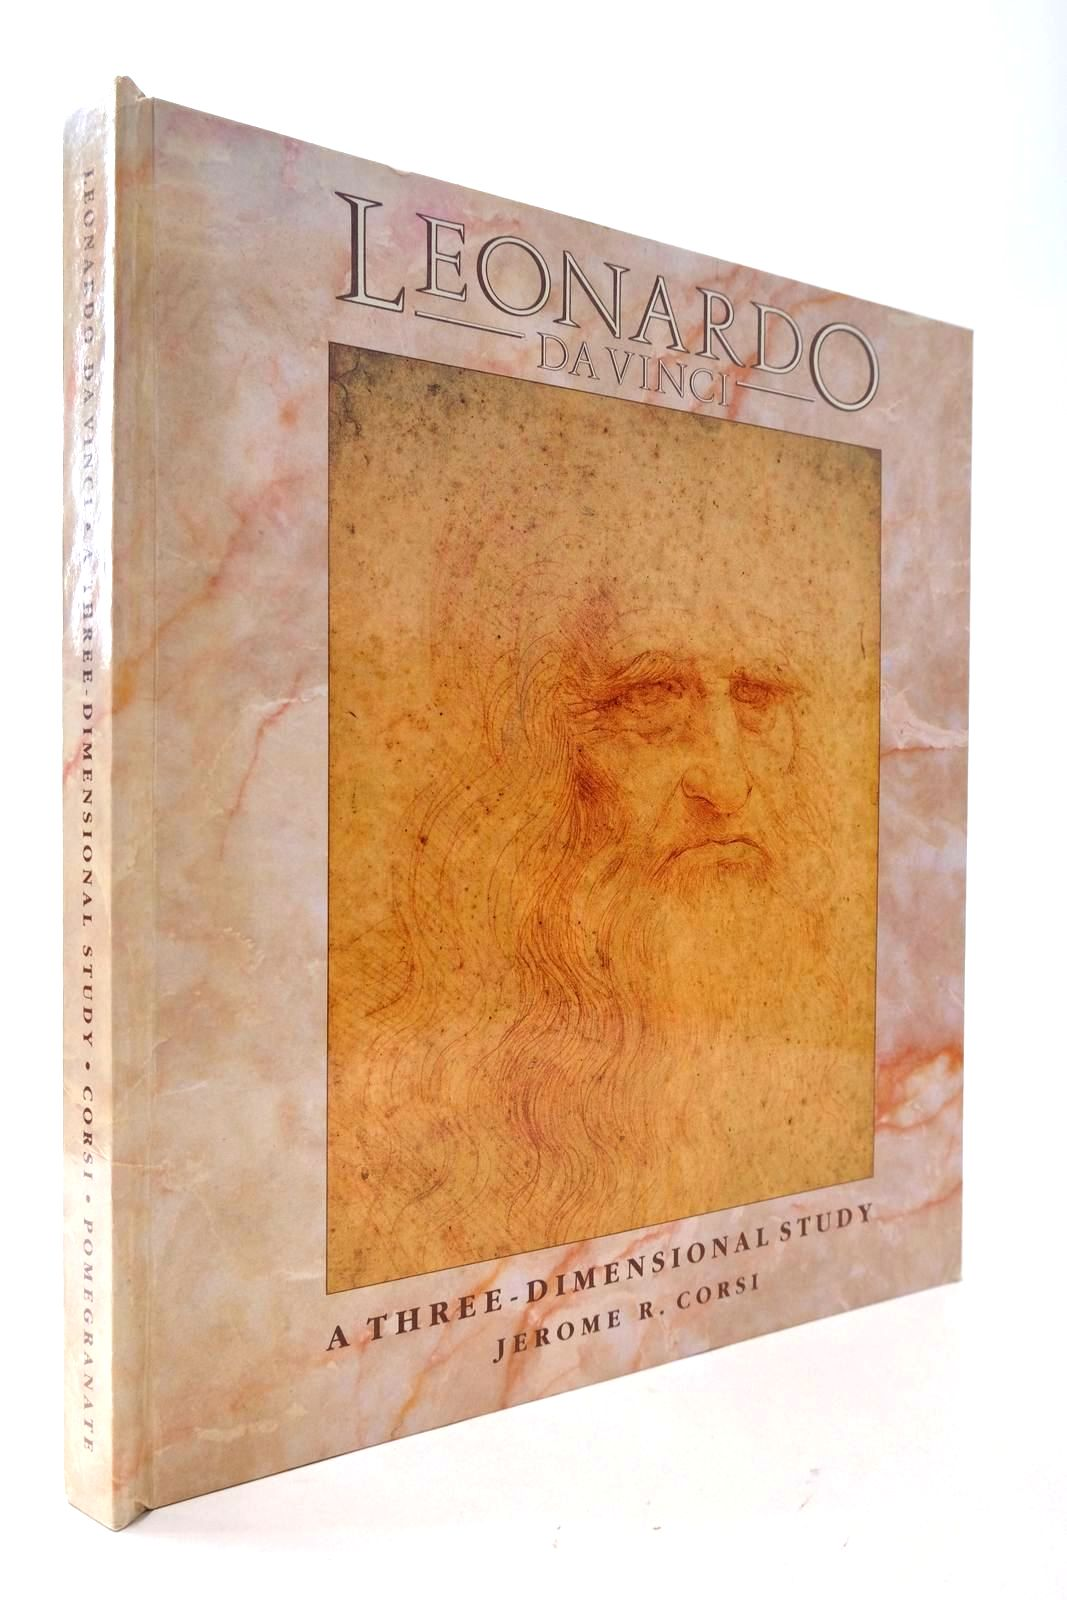 Photo of LEONARDO DA VINCI A THREE-DIMENSIONAL STUDY- Stock Number: 2132959